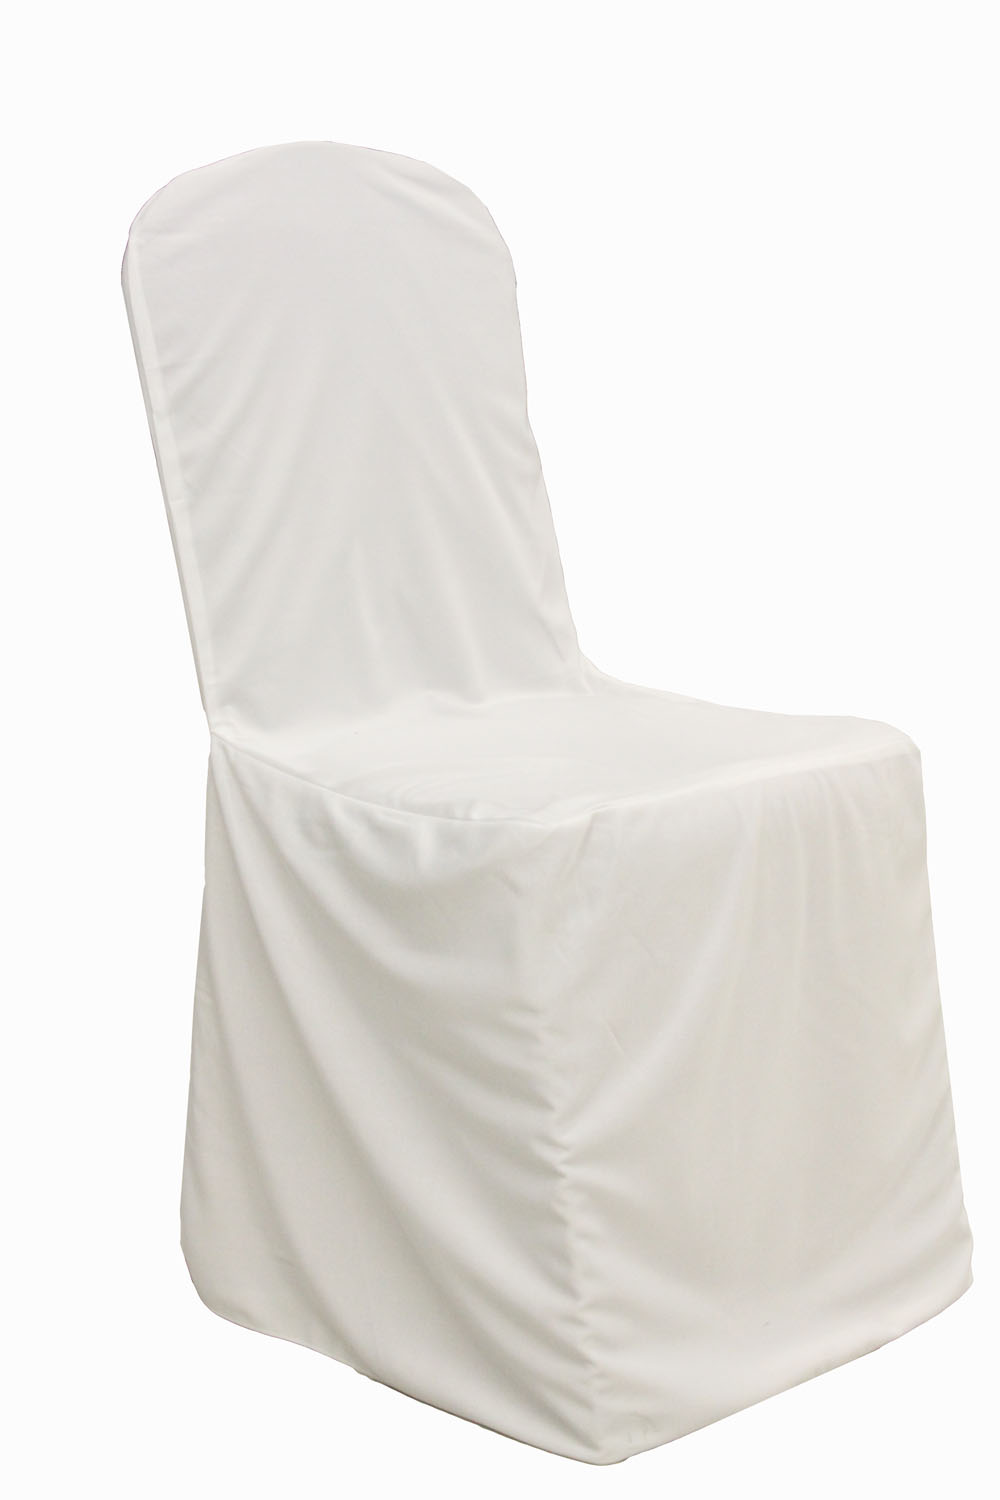 Super Chair Covers Product Categories Tesoro Event Rentals Gmtry Best Dining Table And Chair Ideas Images Gmtryco